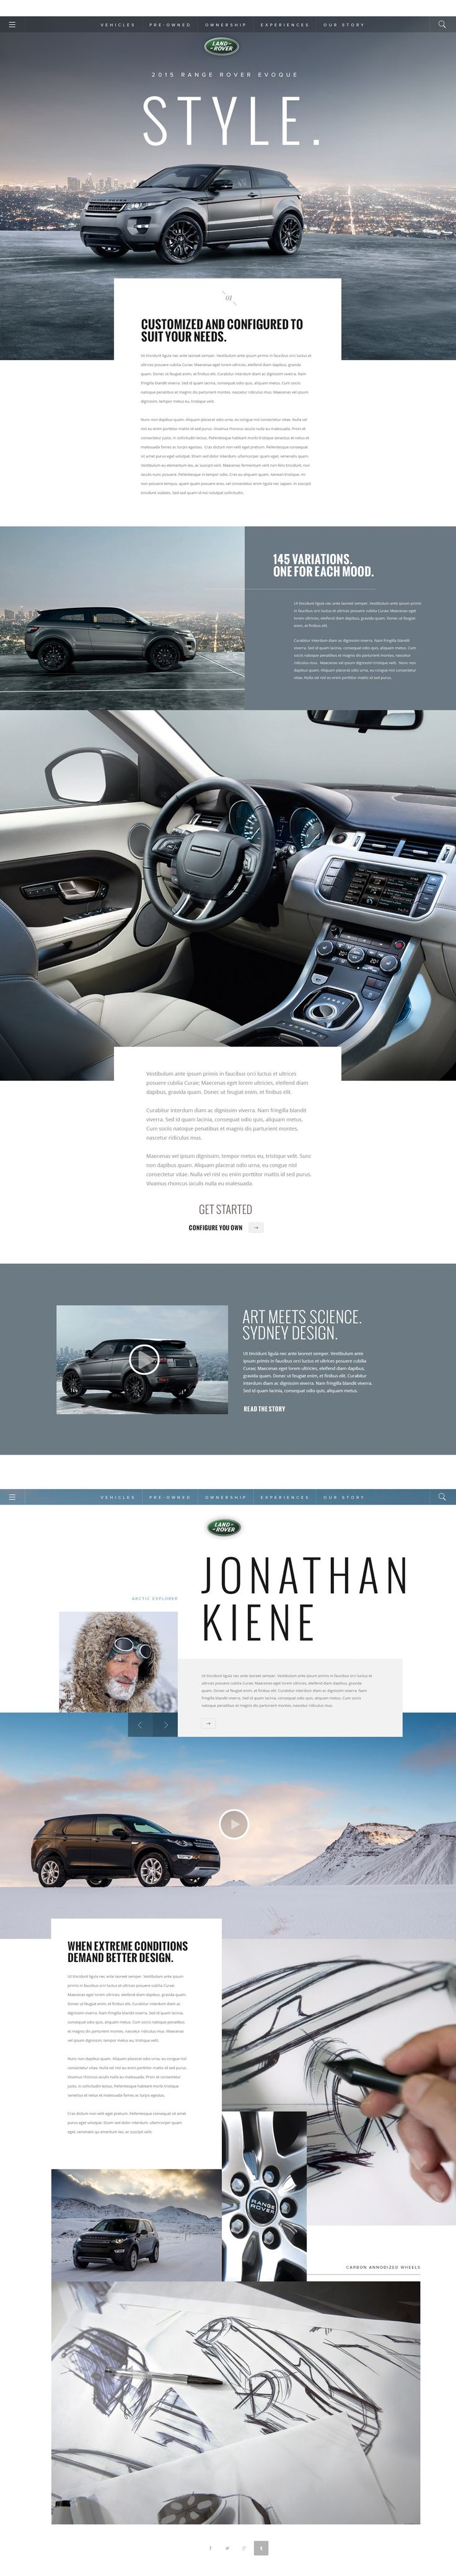 https://www.behance.net/gallery/24108583/LandRovercom?utm_medium=email